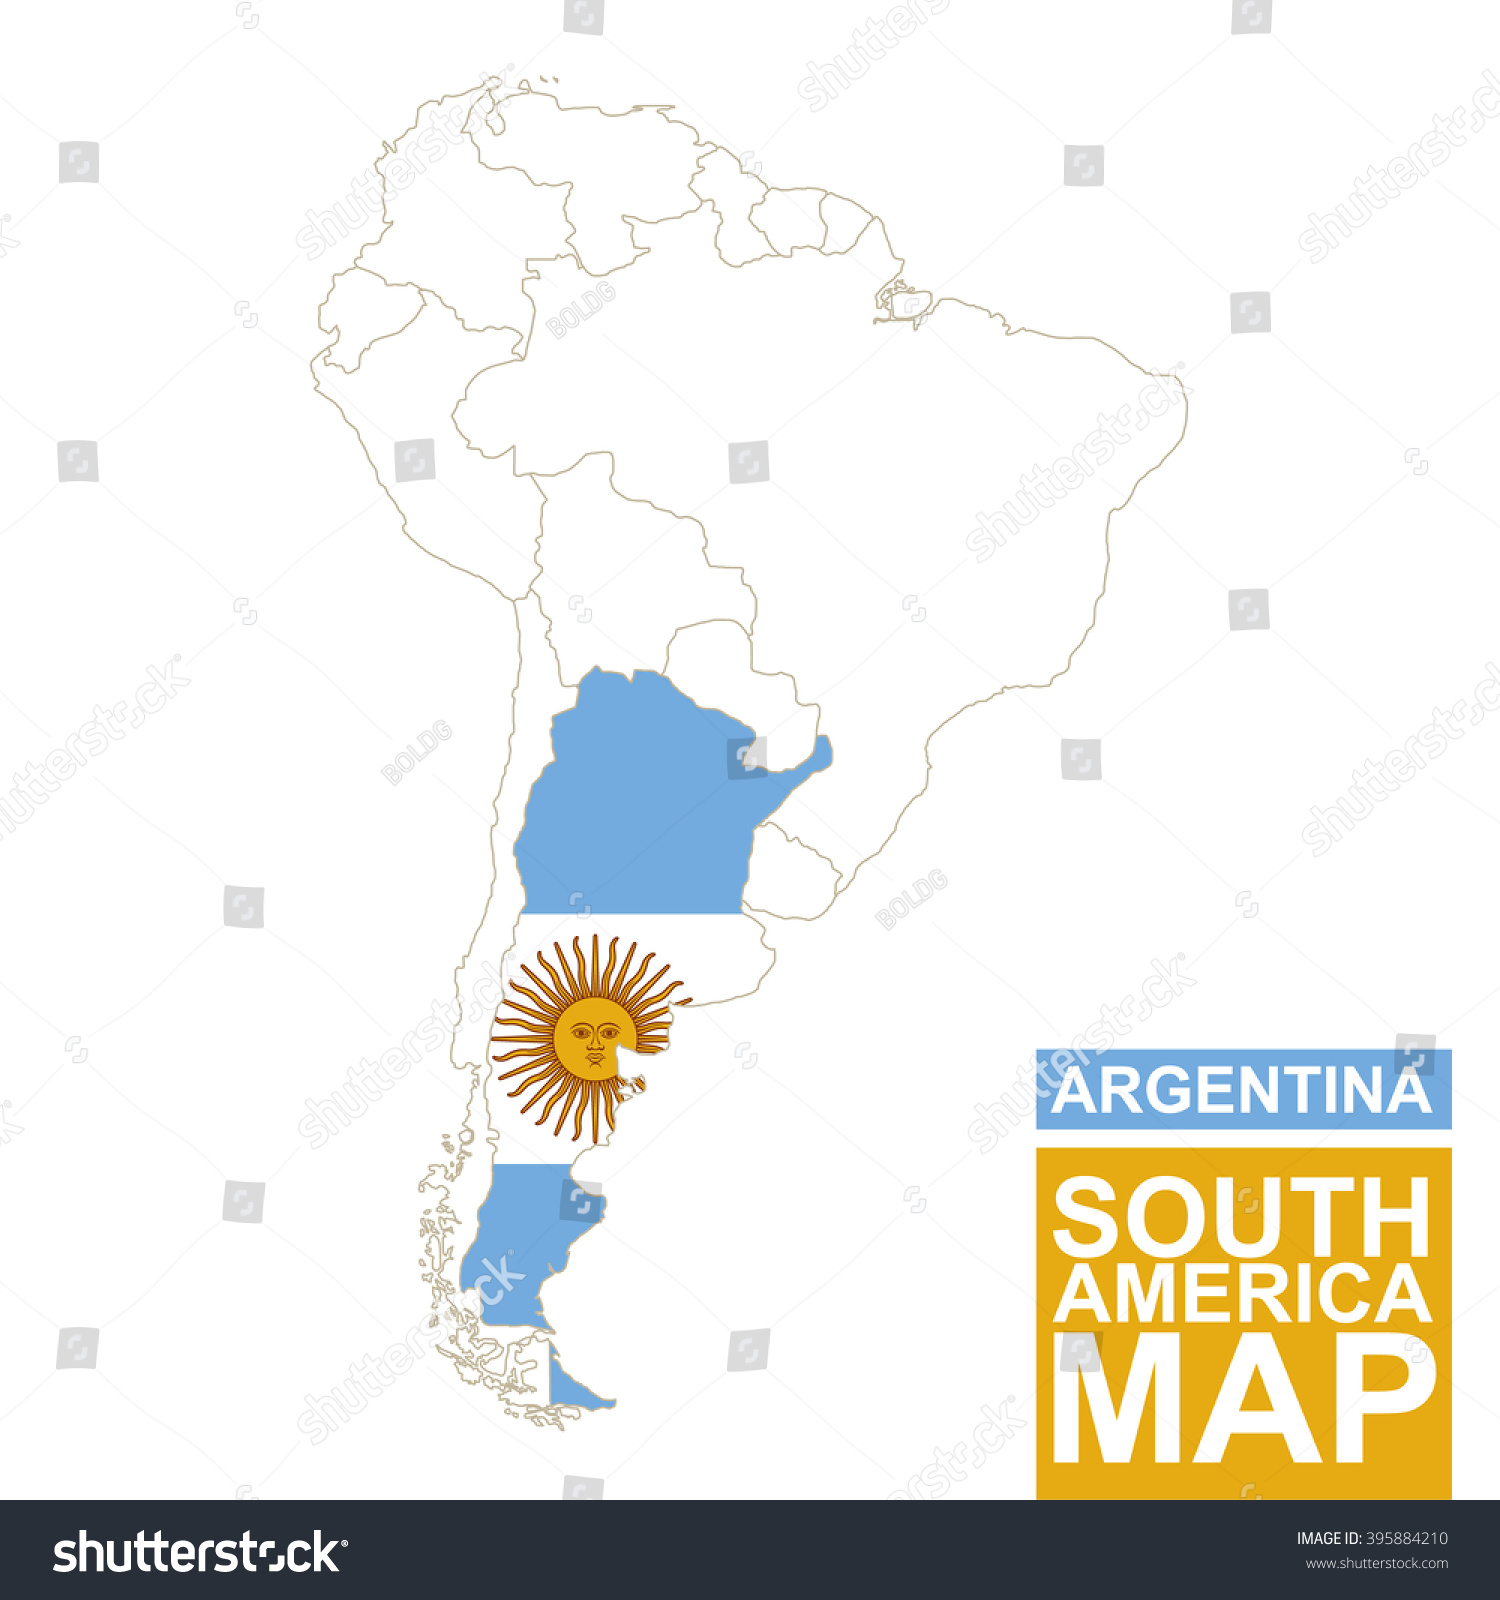 South America Contoured Map Highlighted Argentina Stock Vector - South america map and flags